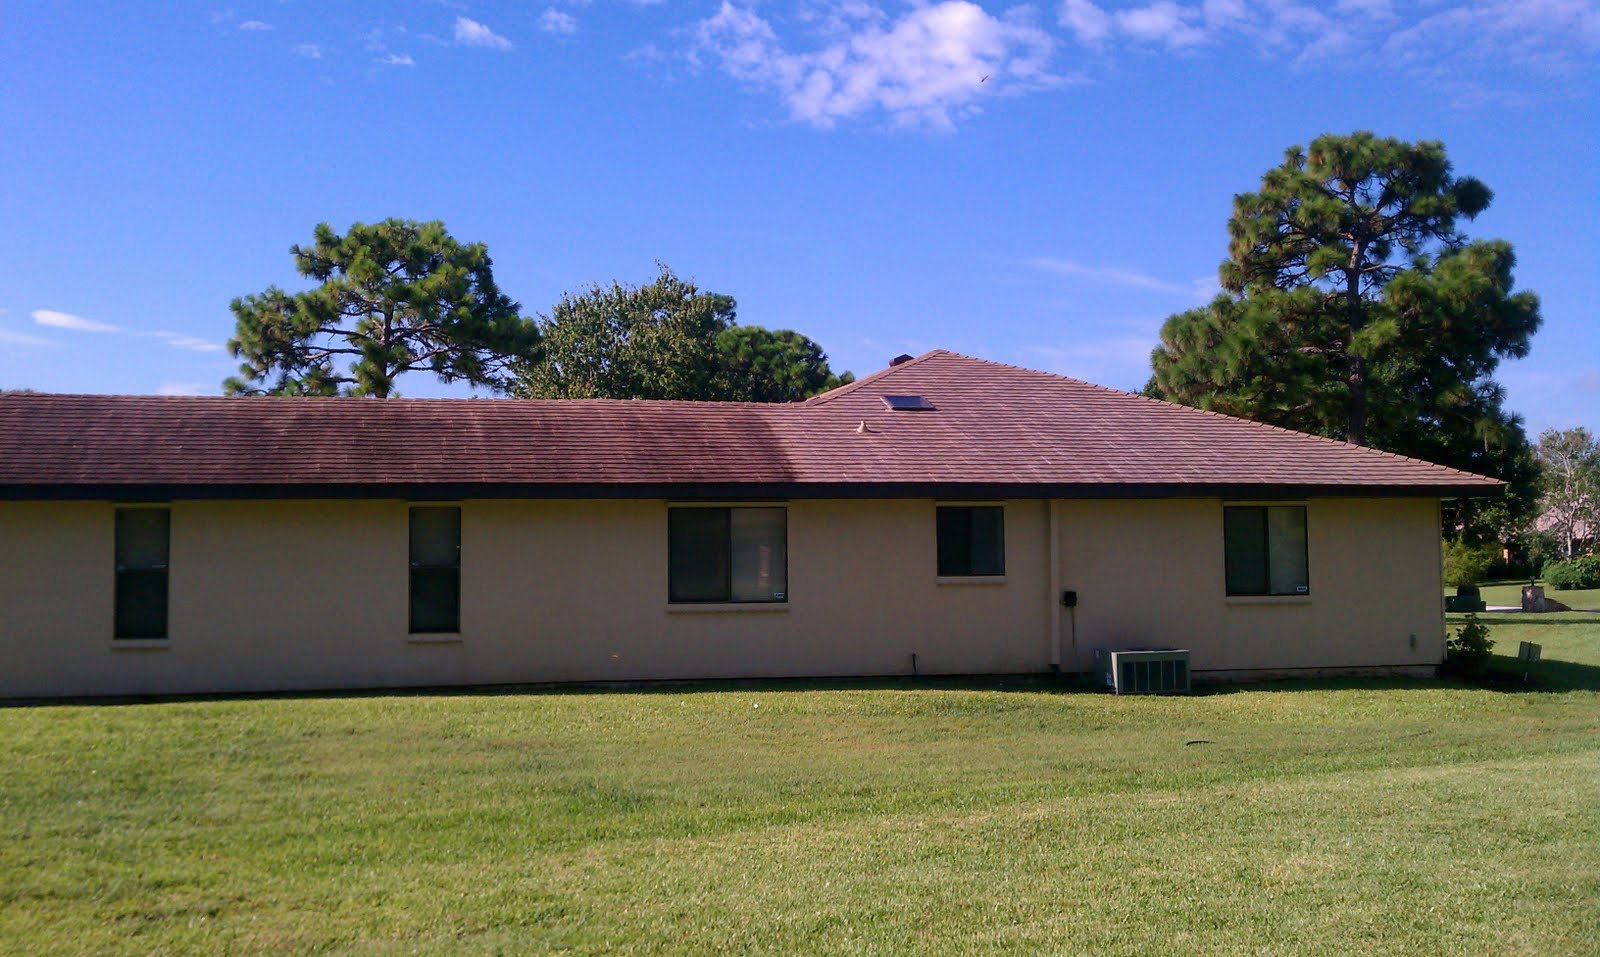 Beacon Roof Exterior Cleaning Shingle Roof Cleaning